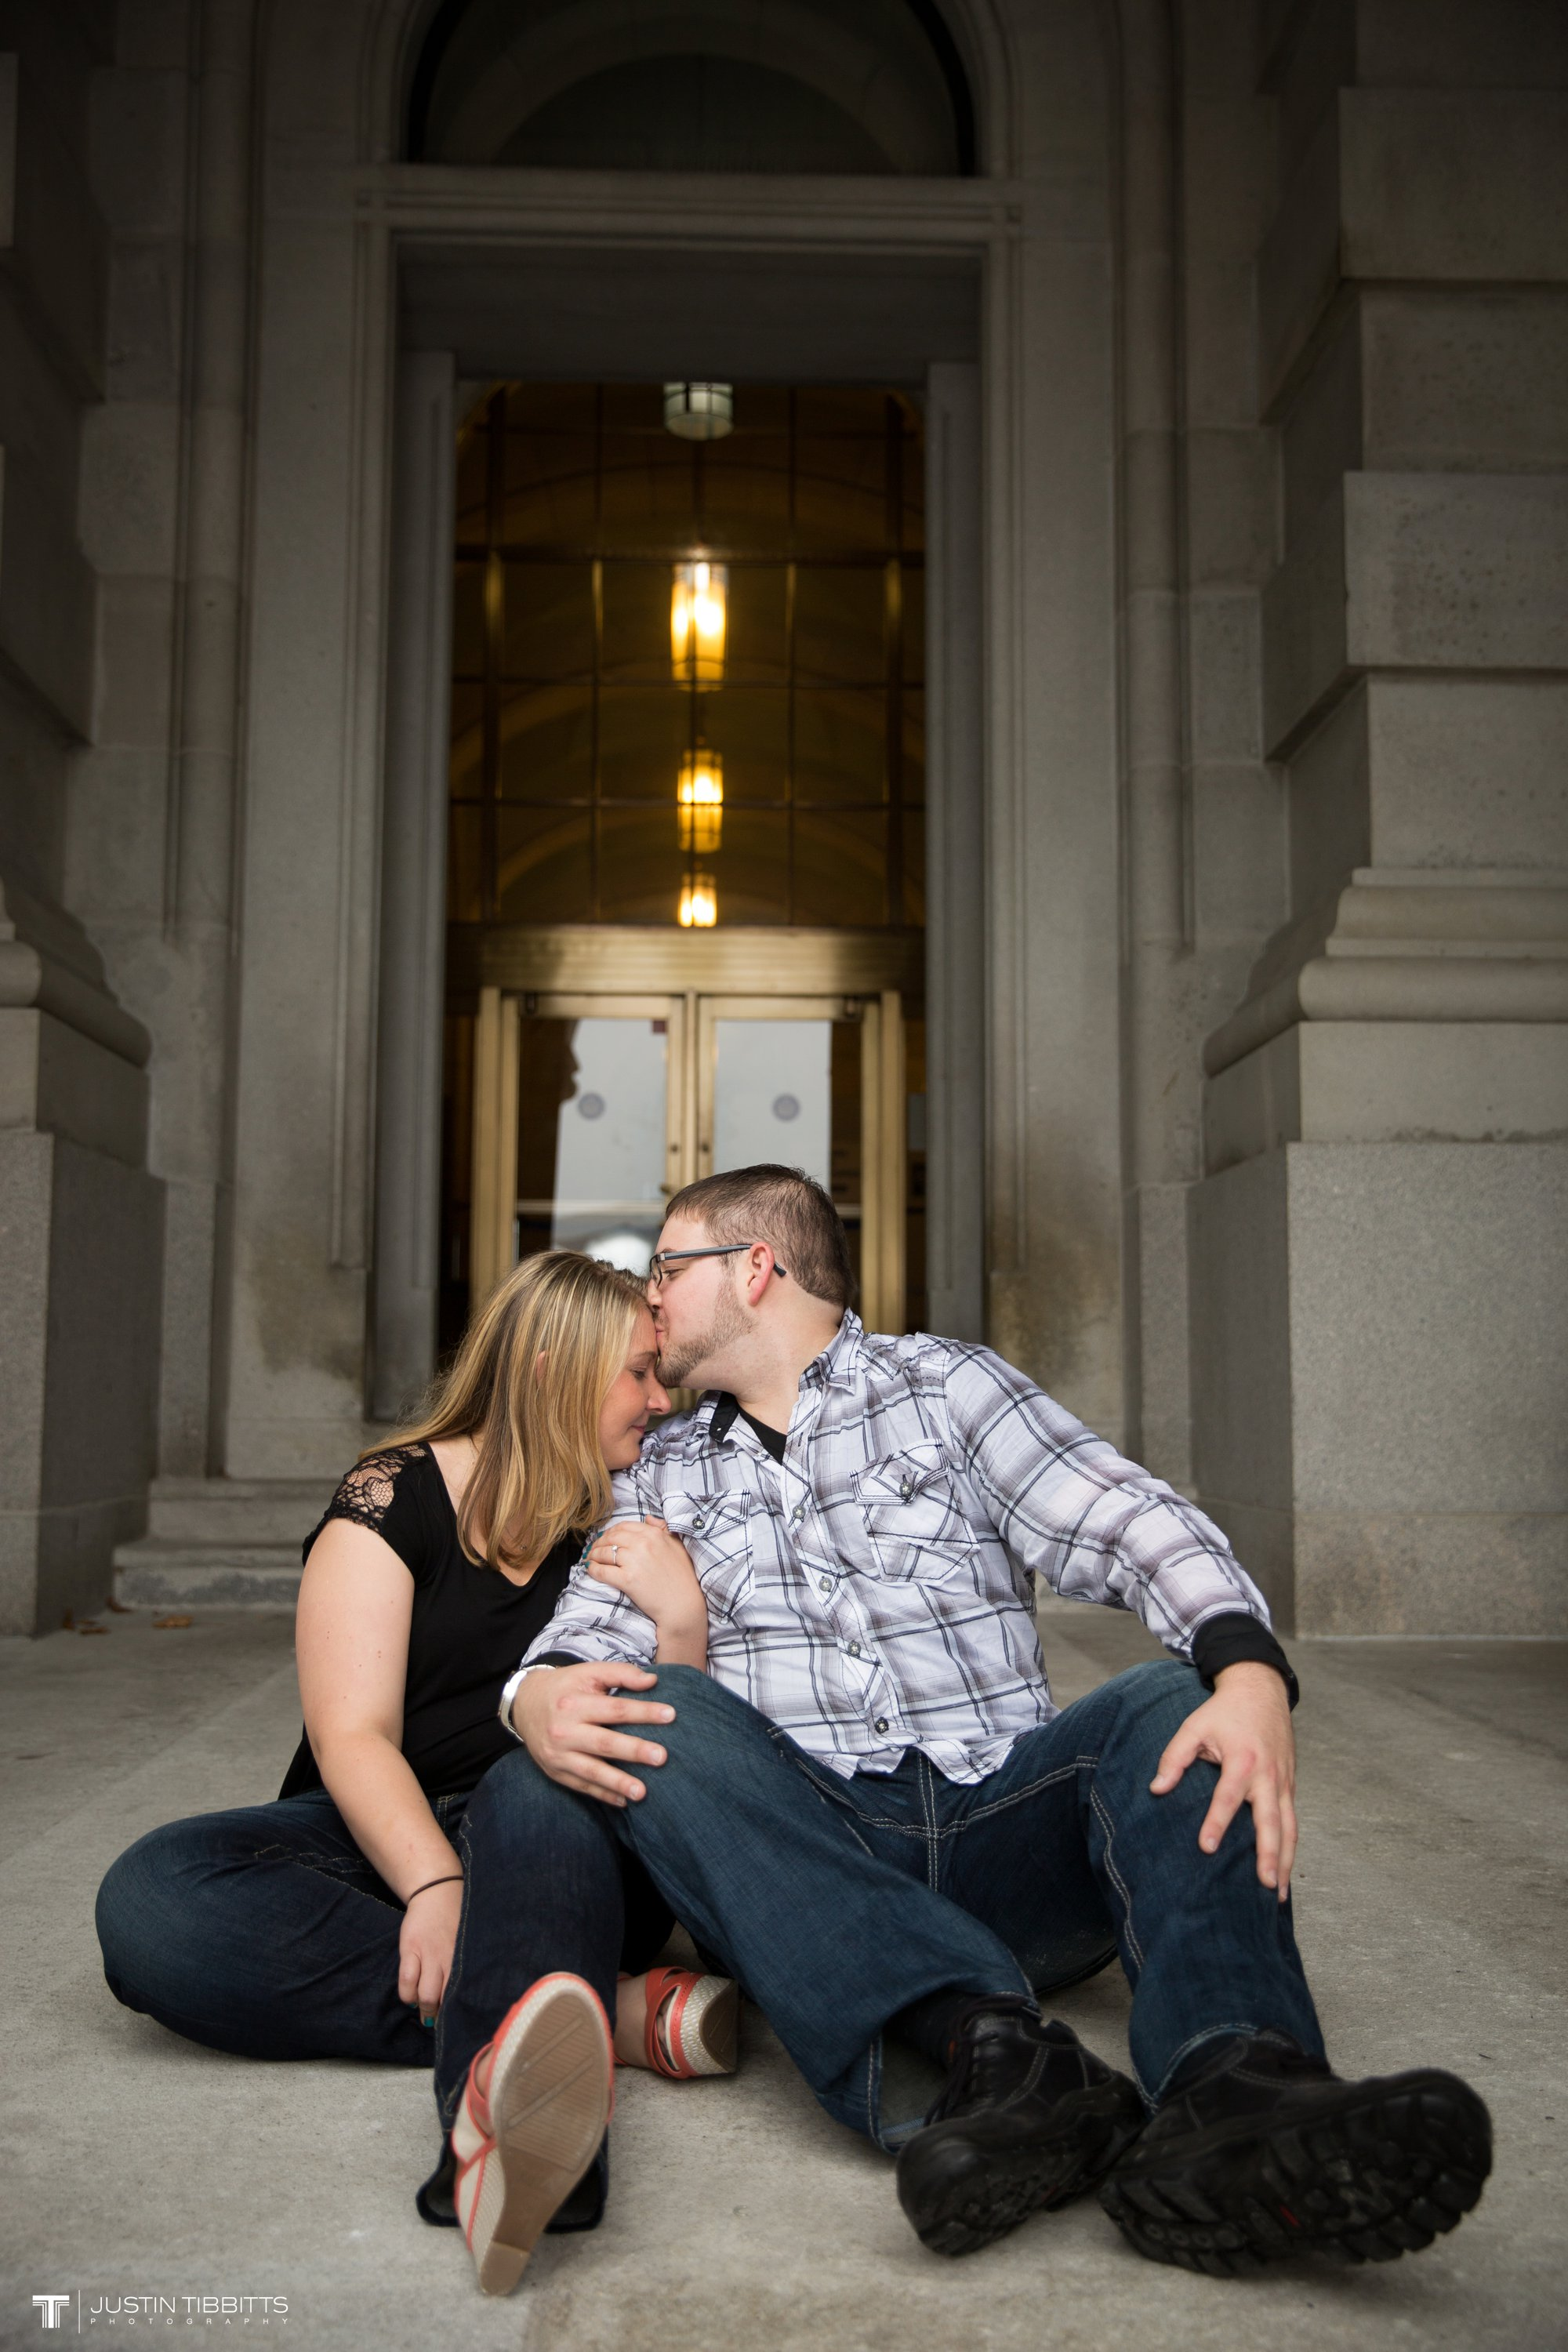 Justin Tibbitts Photography Jessica and Steve H E-shoot-7